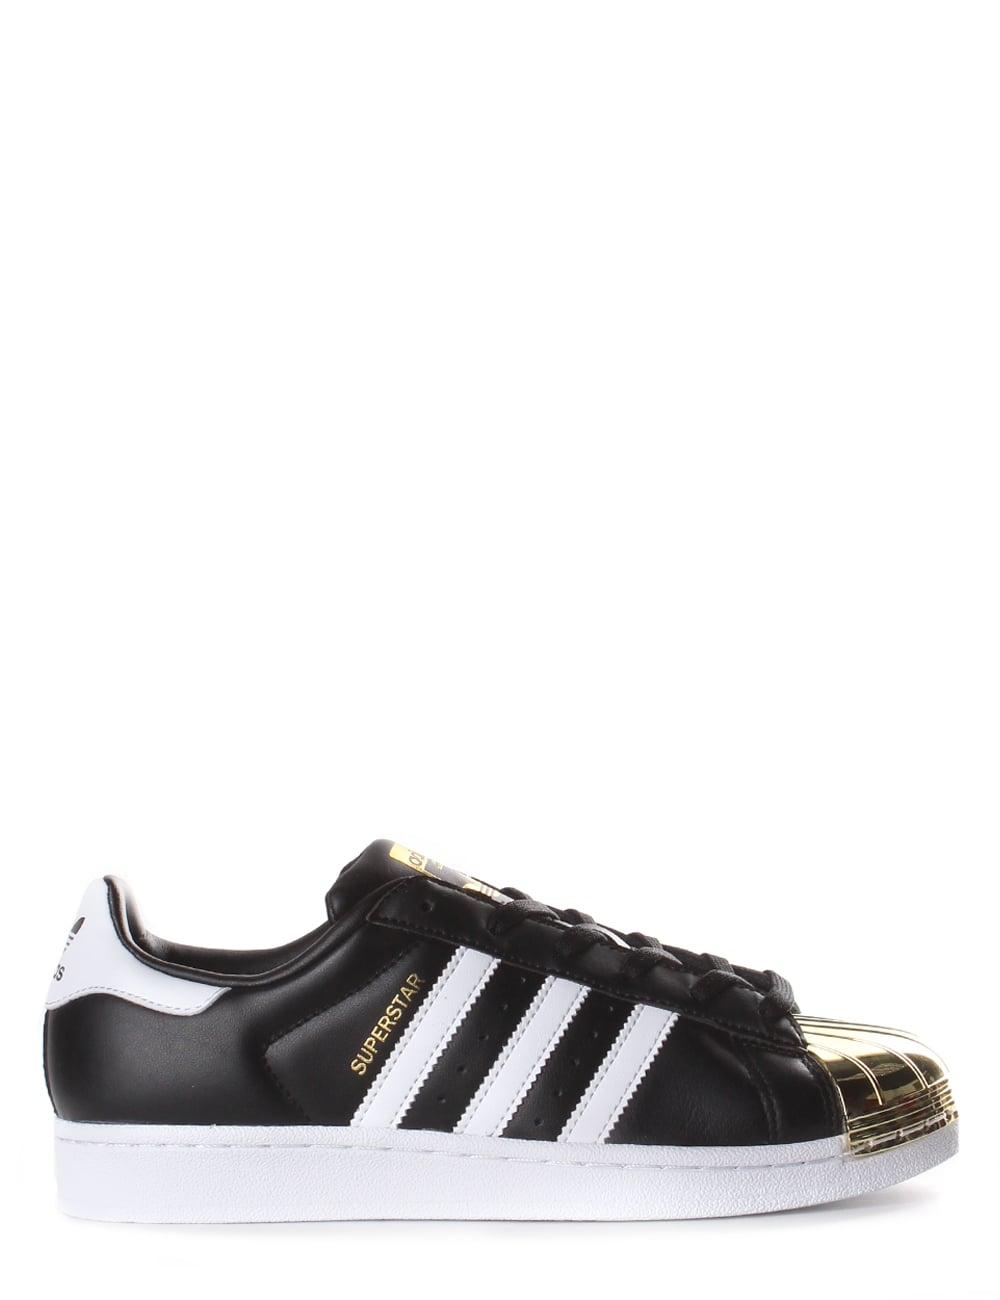 new concept 6f256 ae22d Adidas Superstar 80's Metal Toe Women's Trainers